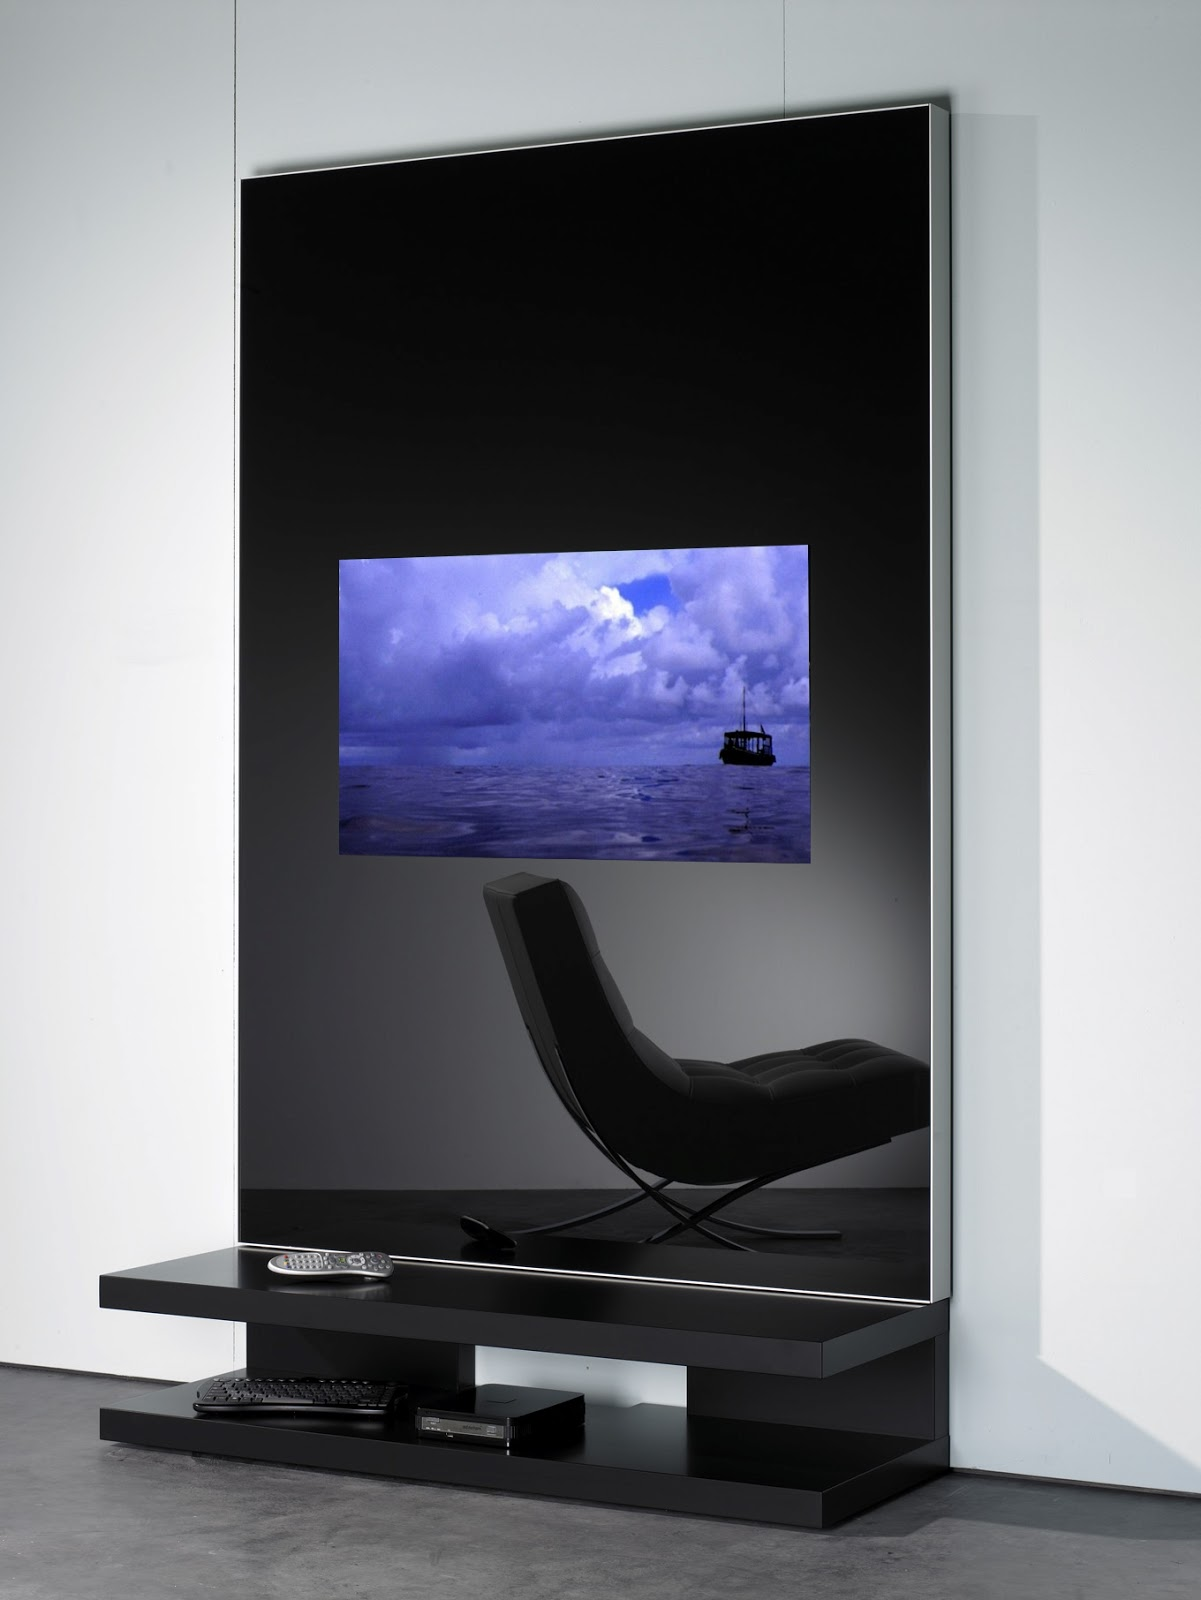 mirror tvs mirror tv from vision aesthetic